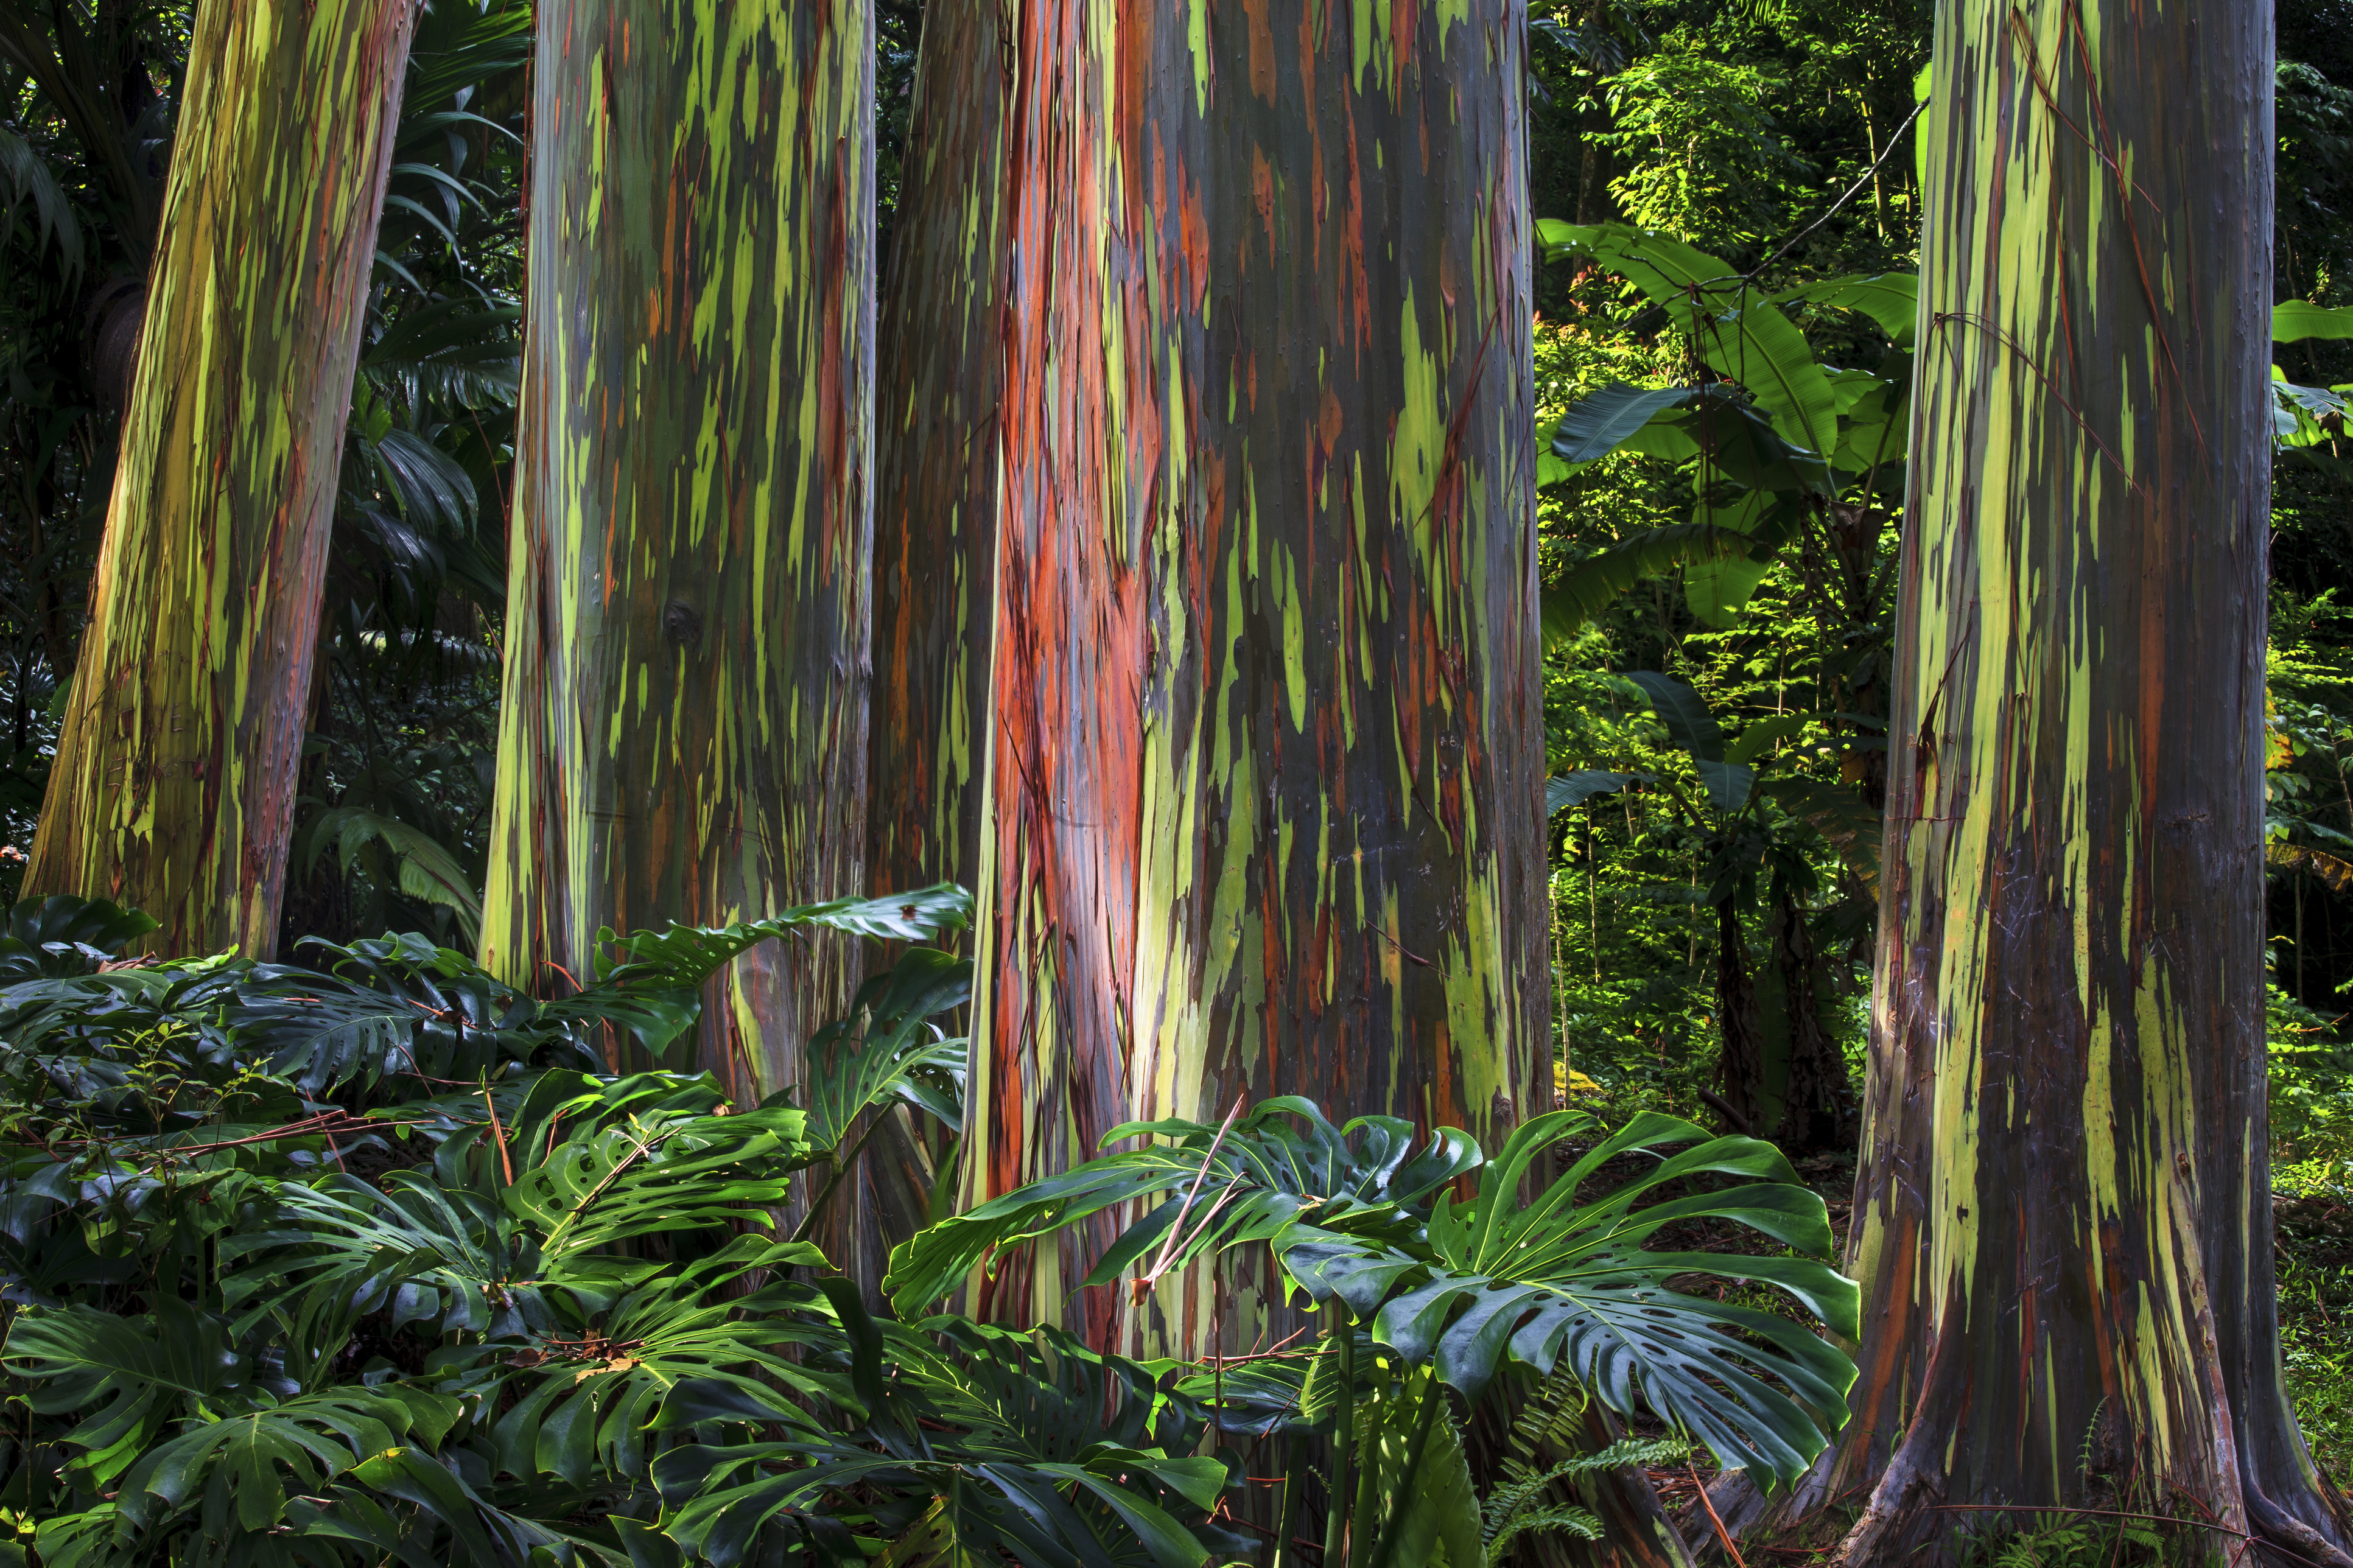 A grove of colourful Rainbow Eucalyptus trees at the Ke'anae Arboretum on Maui's famous Road to Hana, Hawaii, USA.